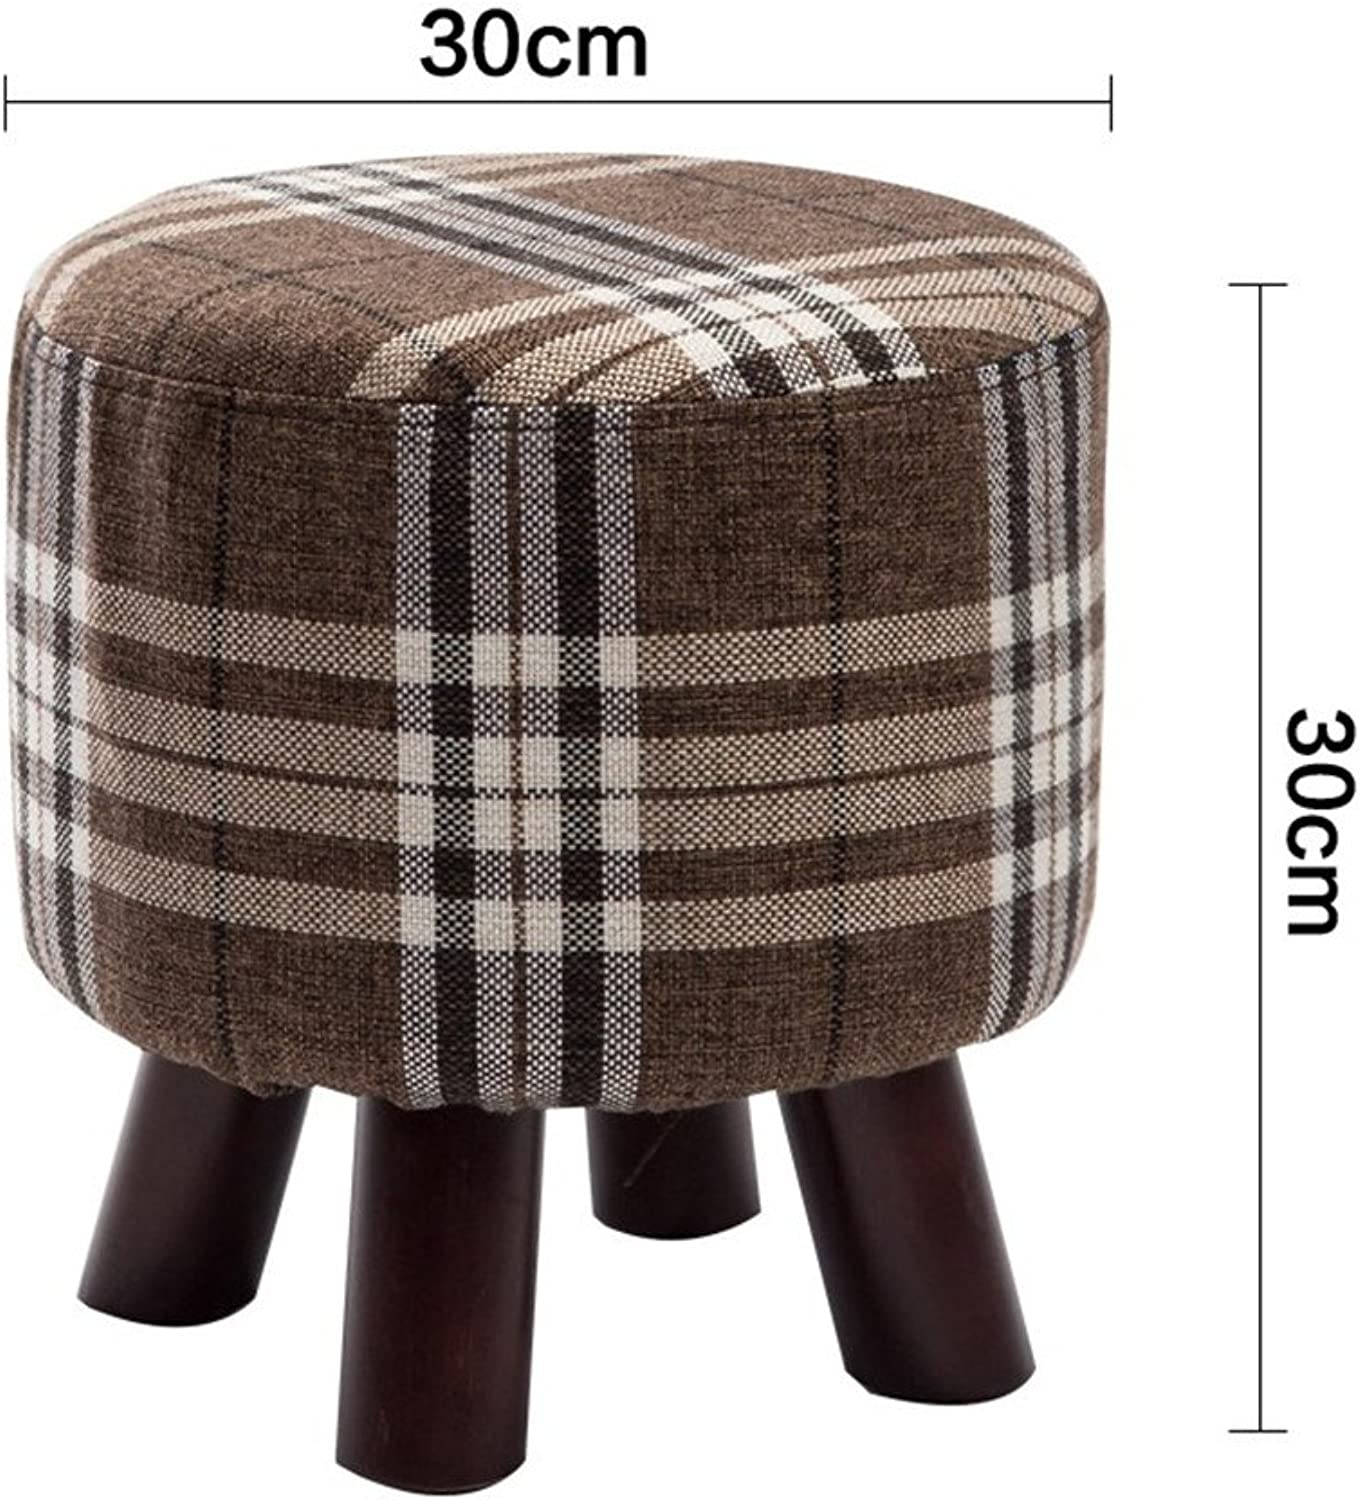 Round Wooden Footstool,Padded Non-Slip Stools Detachable seat Cover Strong Bearing Capacity for Office Living Room Bedroom-B 12x12inch